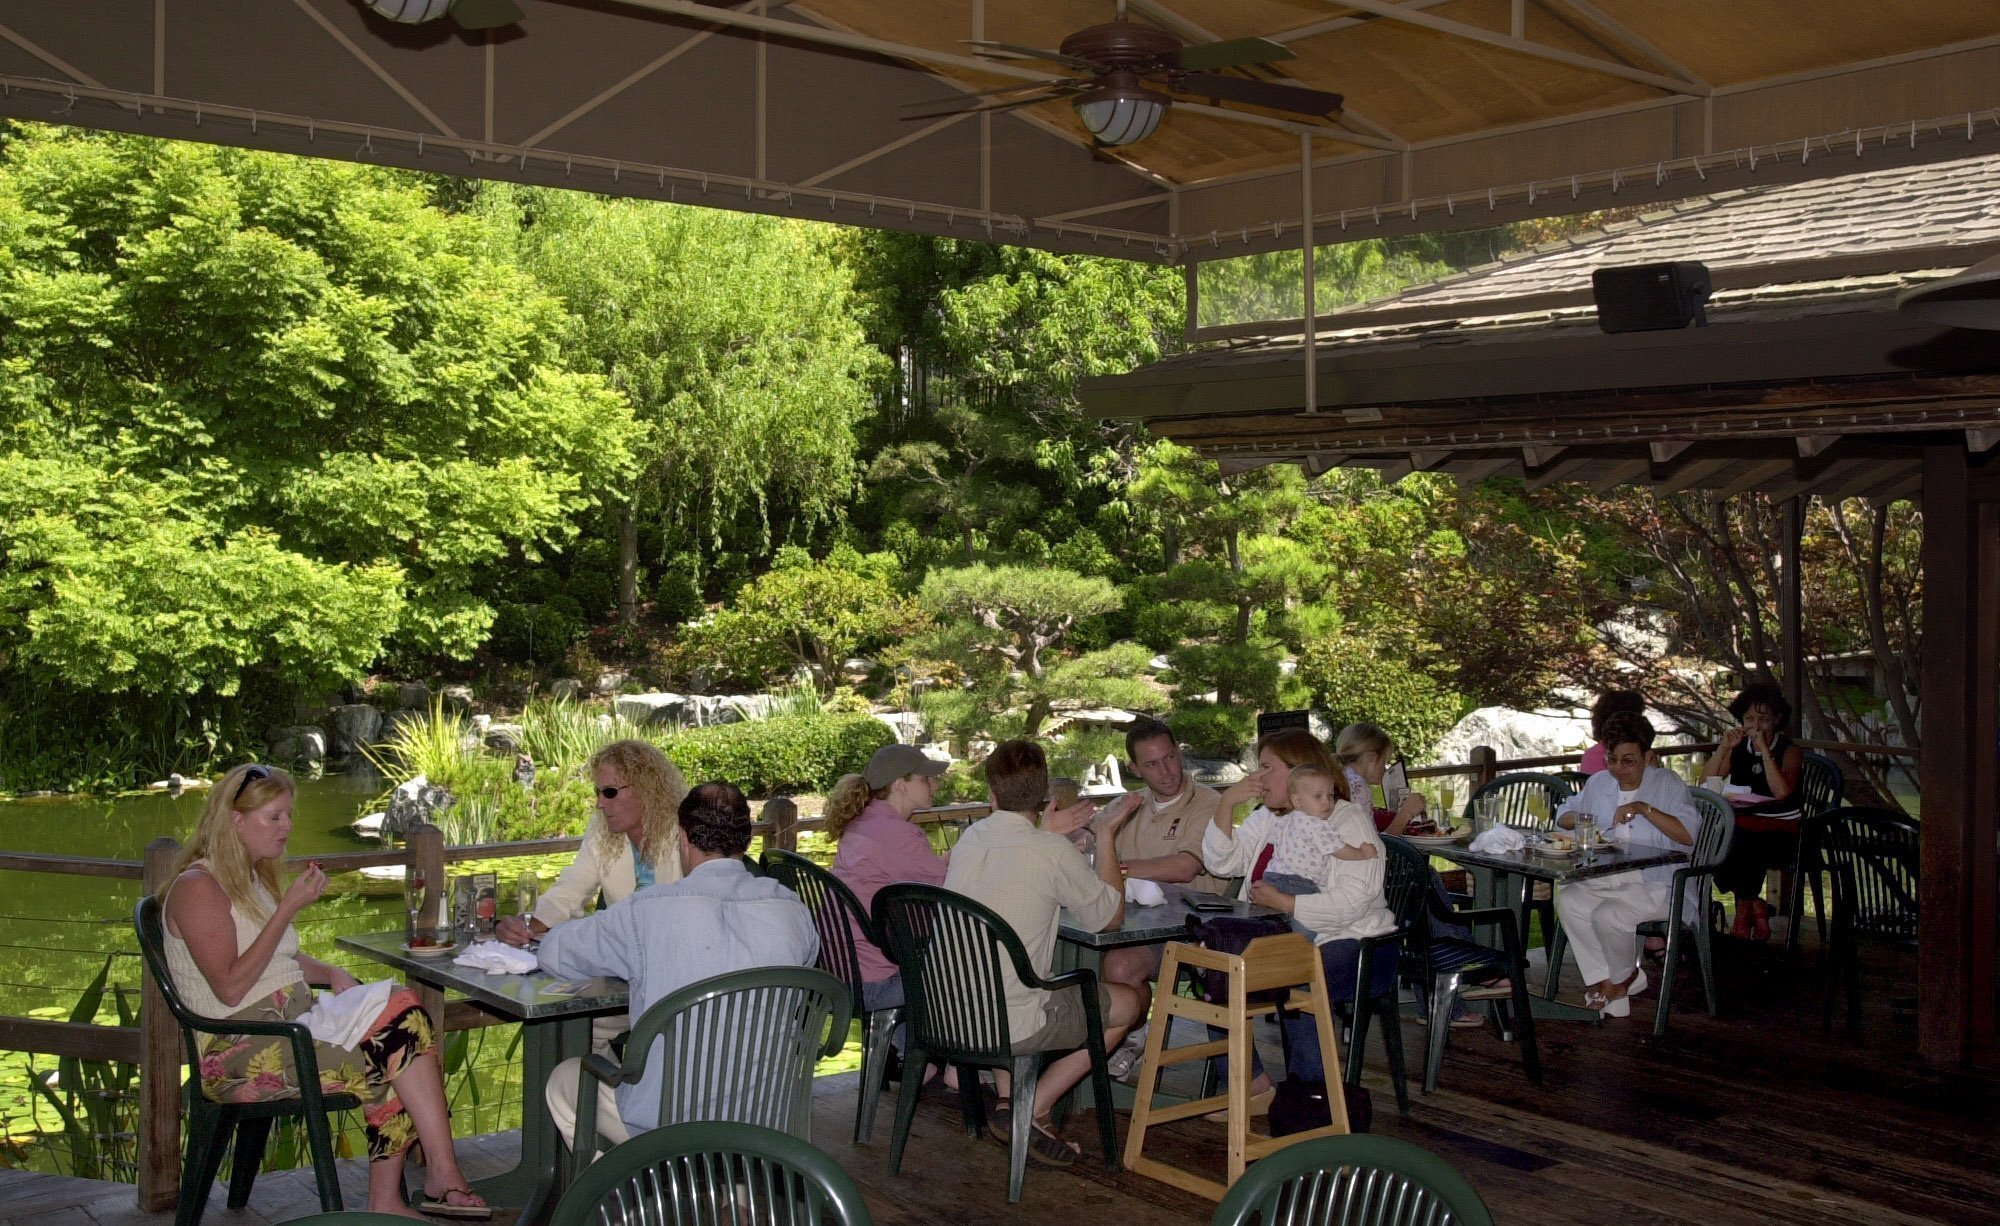 Outdoor Dining In San Diego: Restaurants With Great Views   The San Diego  Union Tribune